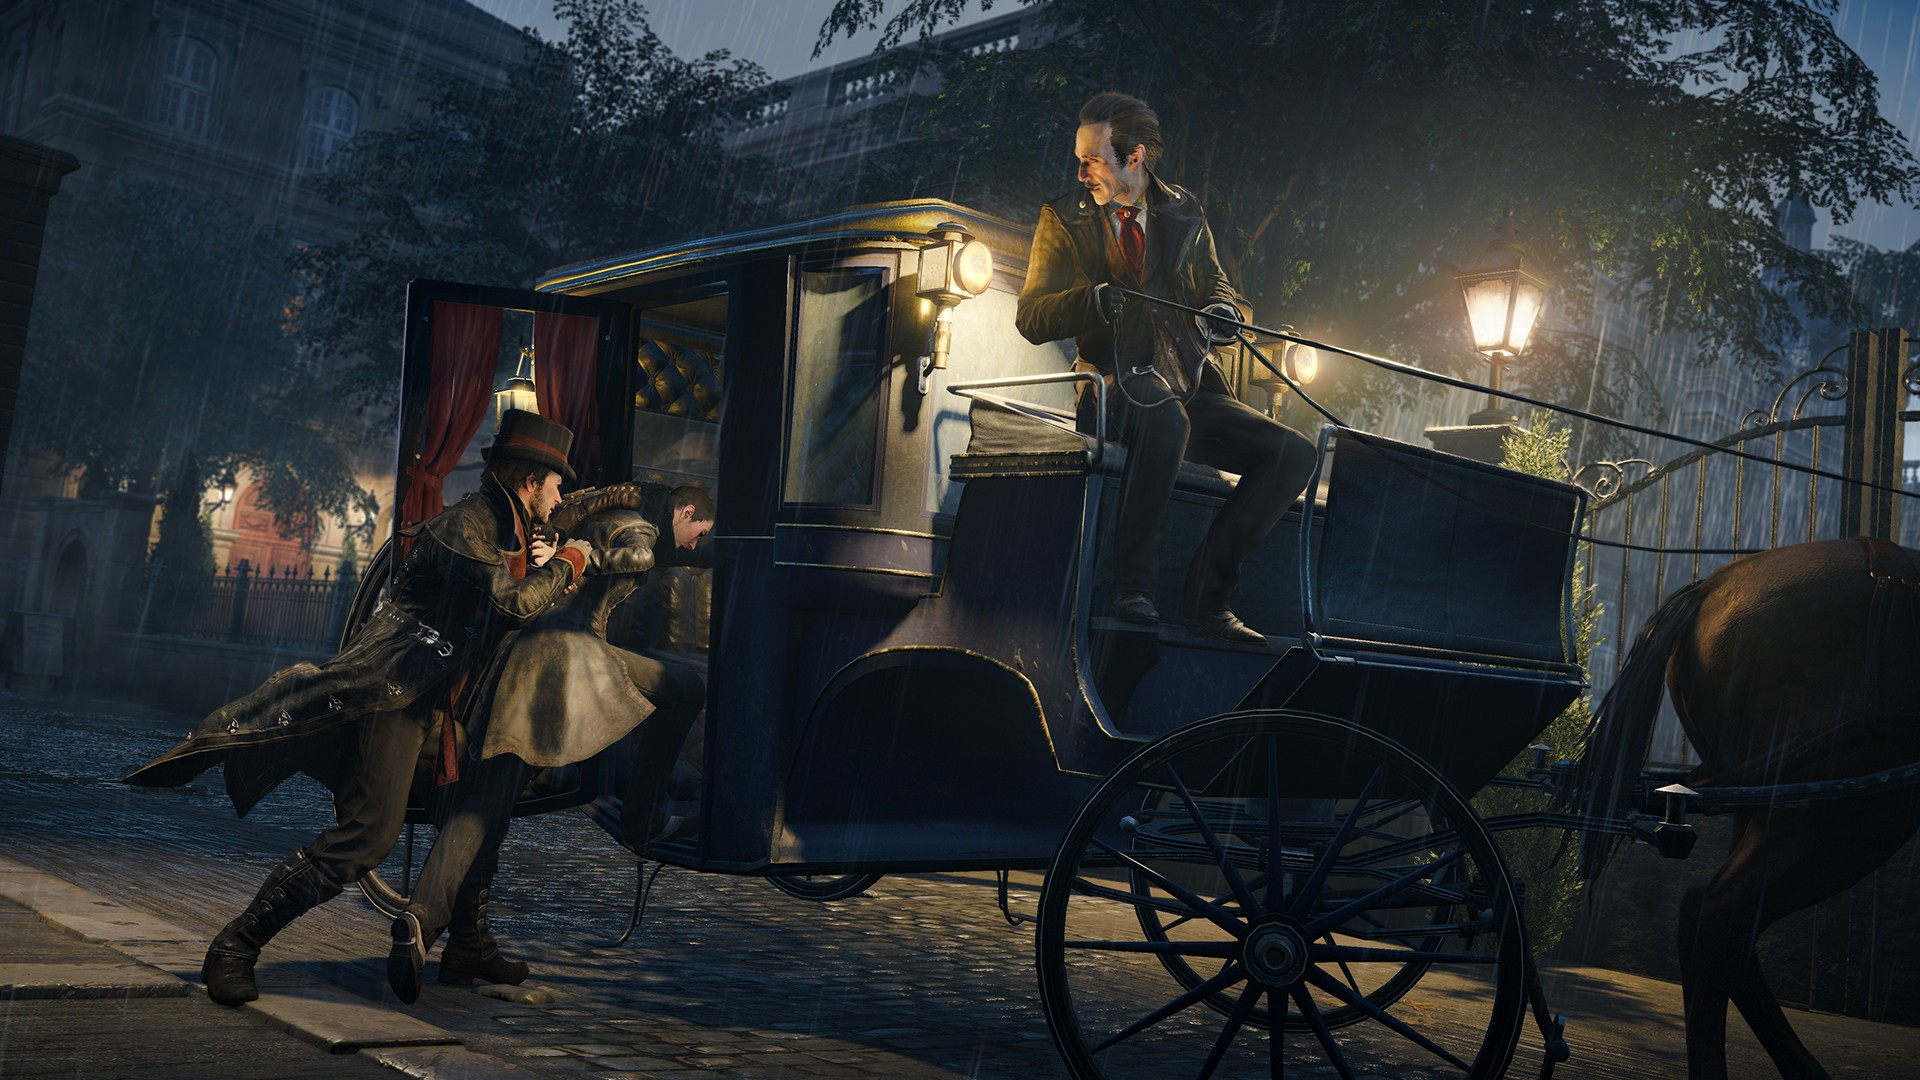 Gamespot Has Released A Side By Video Comparison Between The Two Console Versions Of Assassins Creed Syndicate Which Can Be Viewed Below